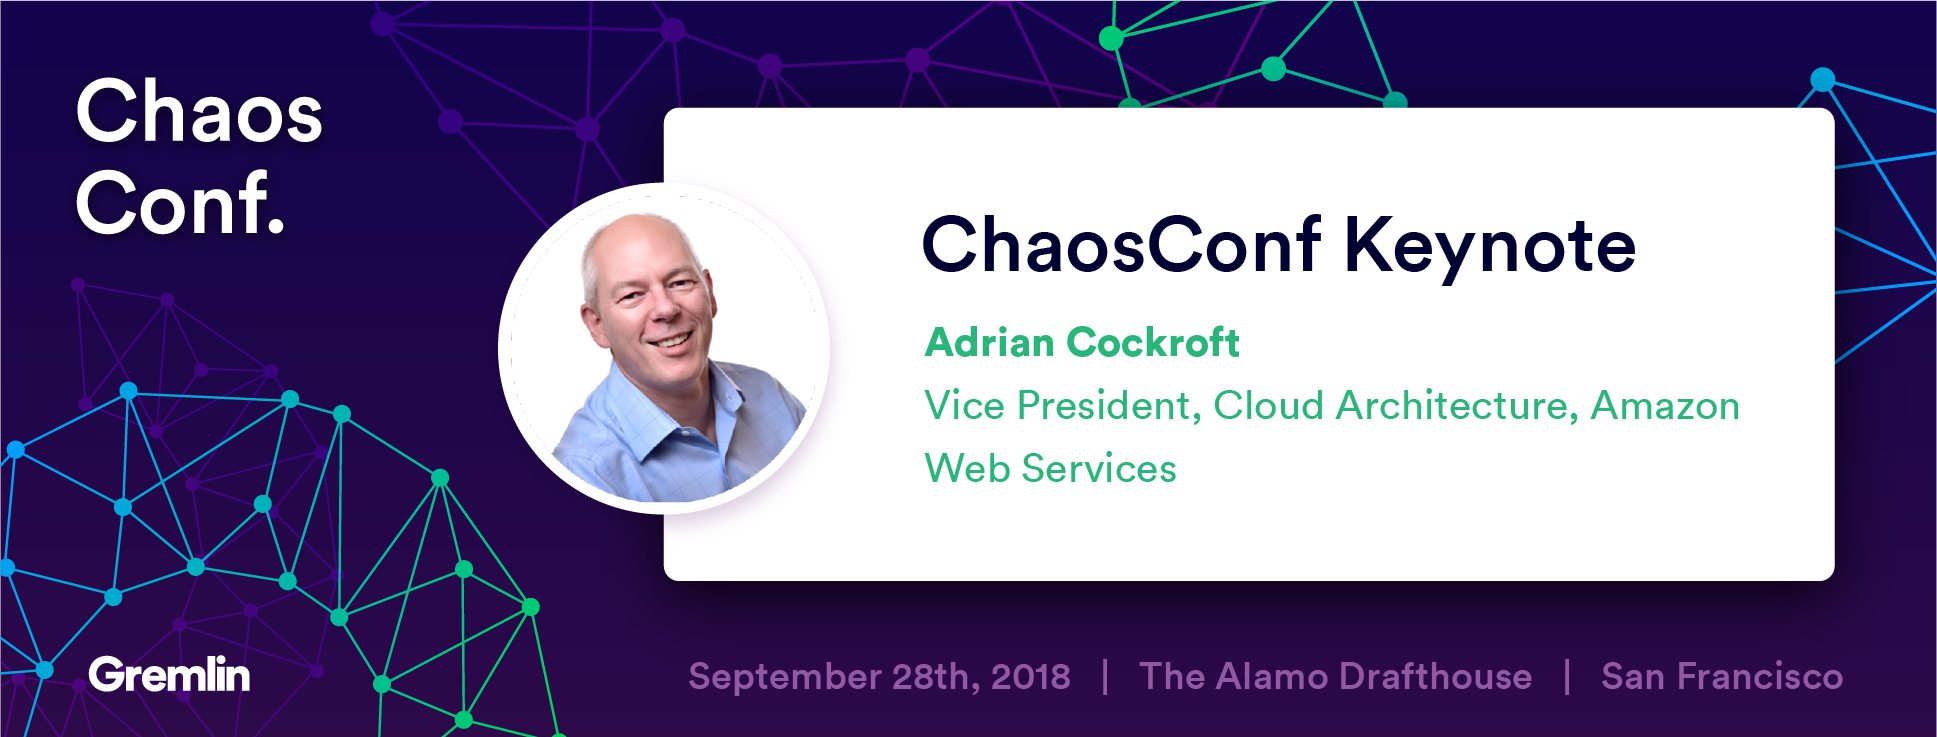 """Adrian Cockroft: """"Chaos Engineering - What it is, and where it's going"""" - Chaos Conf 2018"""